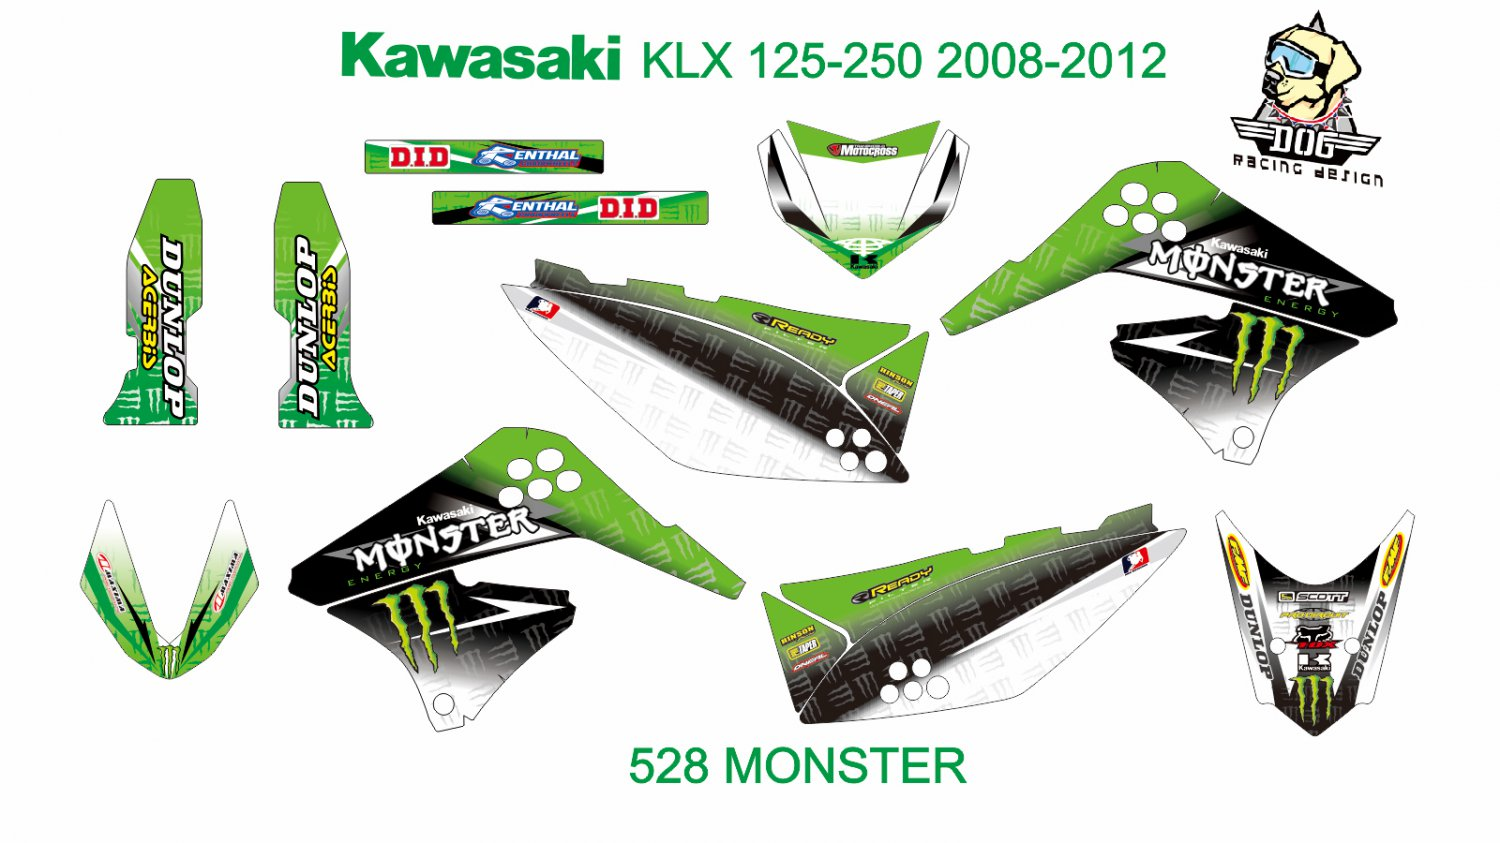 KAWASAKI KLX 125-250 2008-2012 GRAPHIC DECAL KIT CODE.528